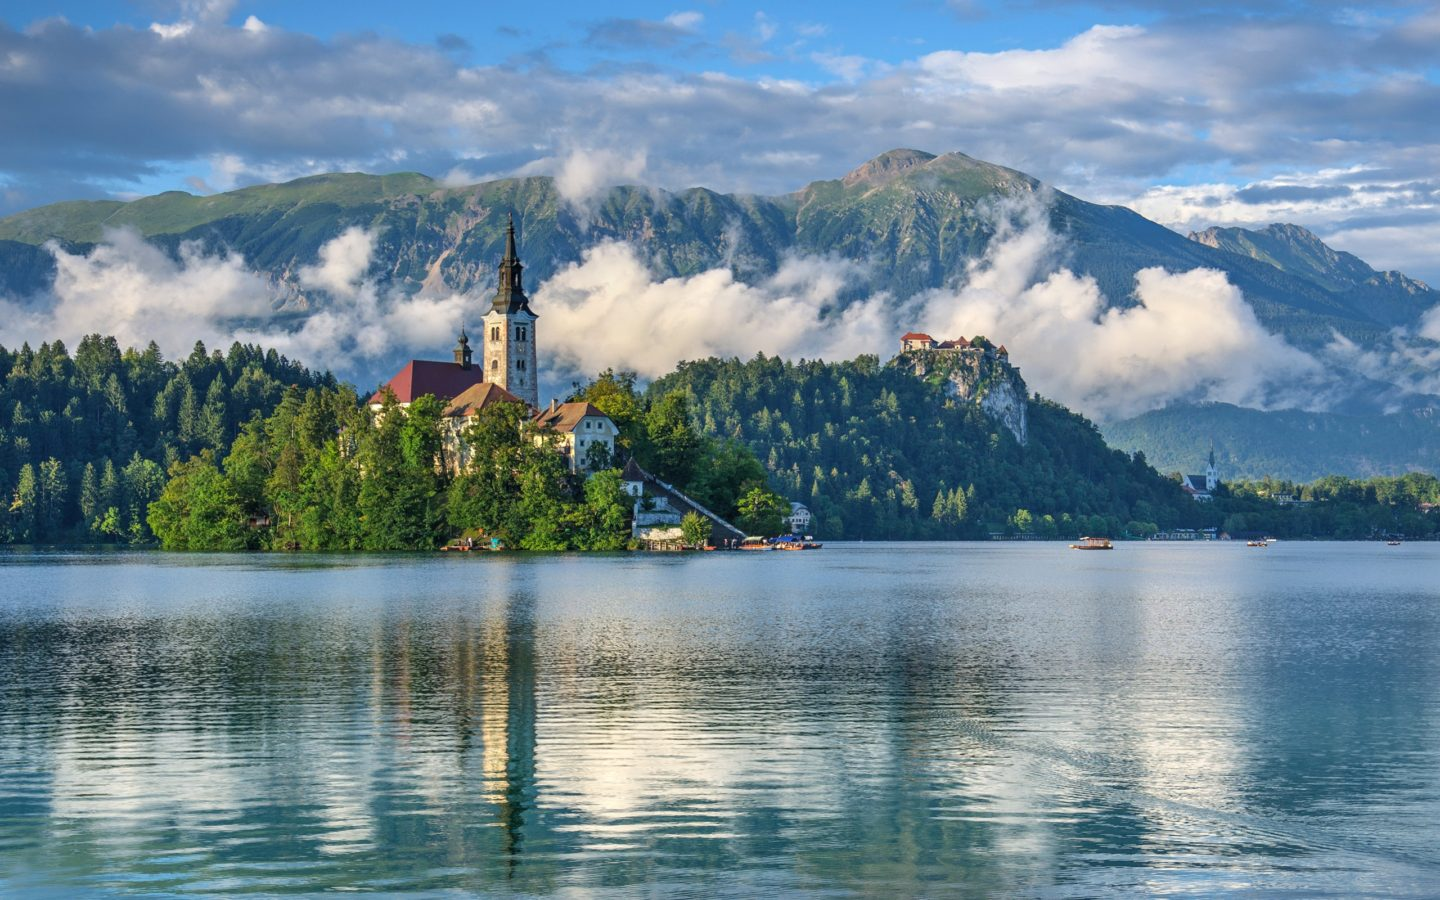 Animated Wallpaper For Tablet Slovenia Lake Scenery Mountains Lake Bled Nature 412283